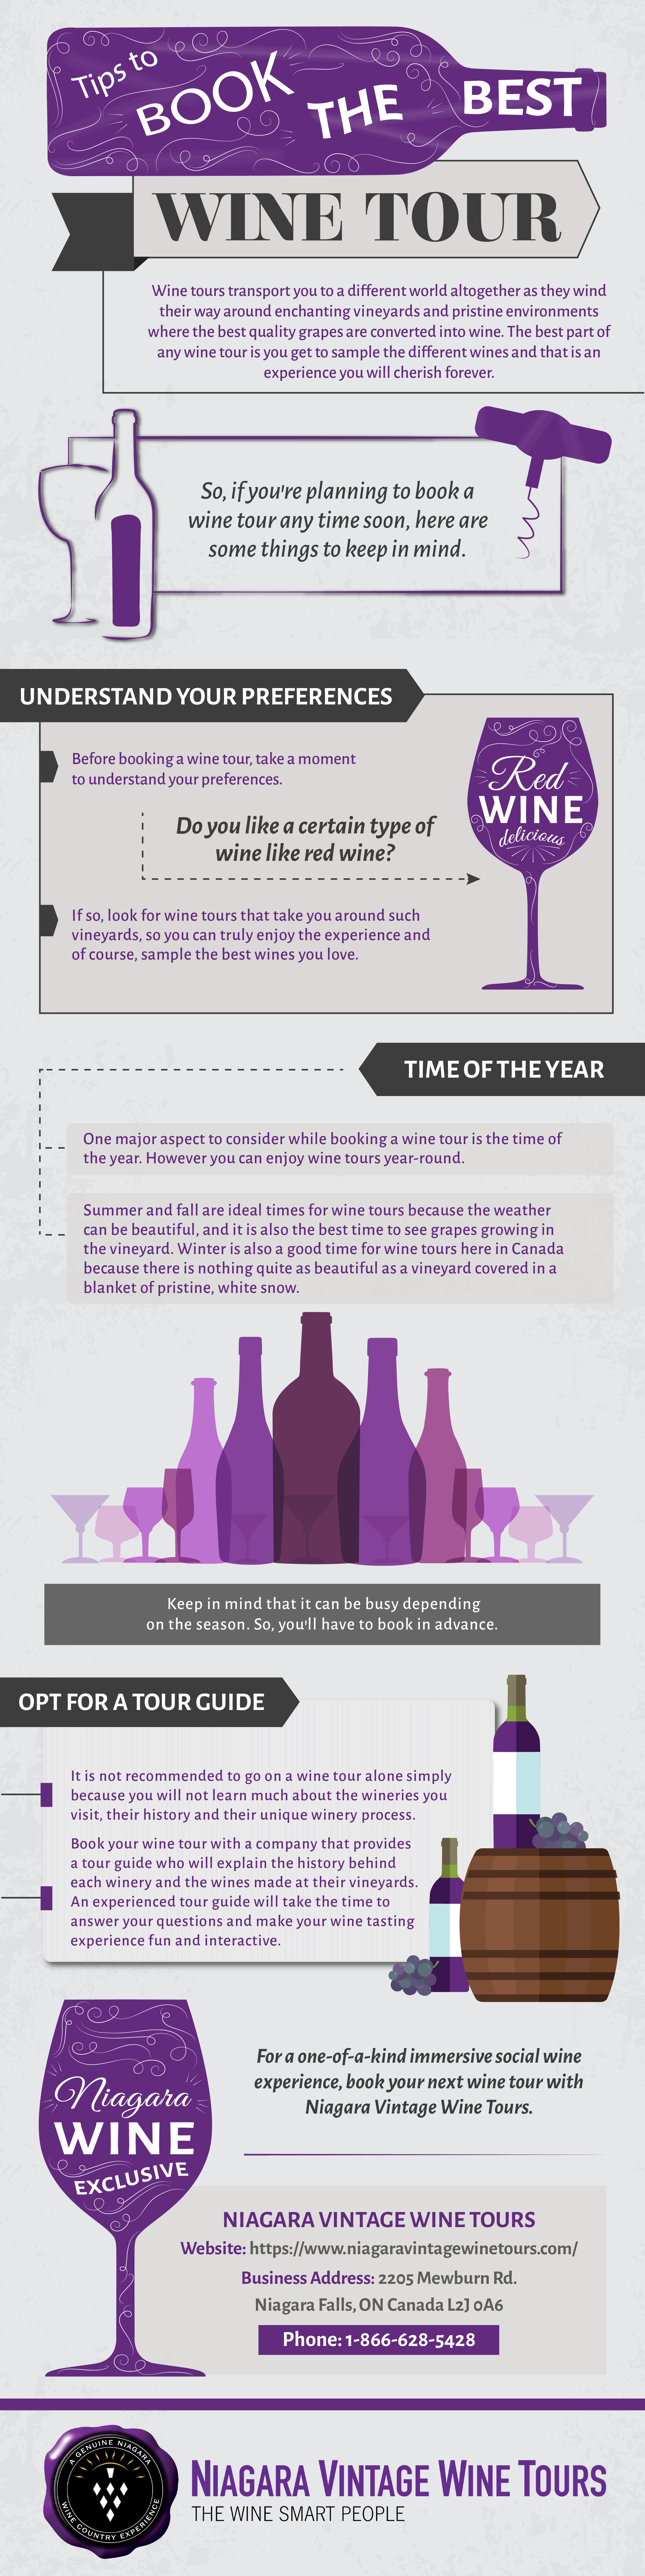 Tips To Book The Best Wine Tour